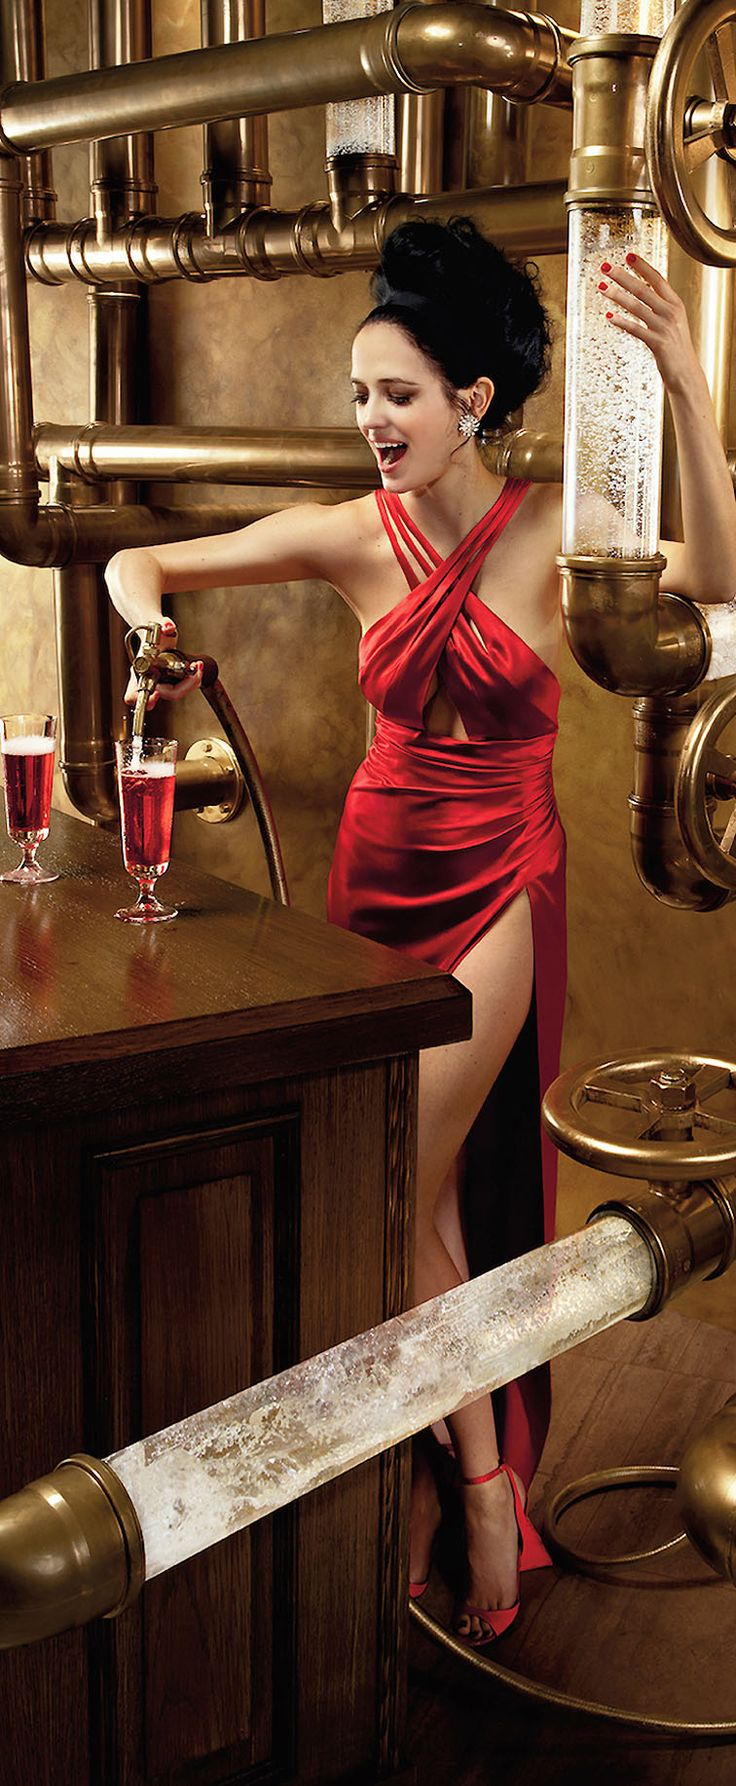 Someone's ready for a Happy New Year! via the Eva Green-Campari Calendar 2015